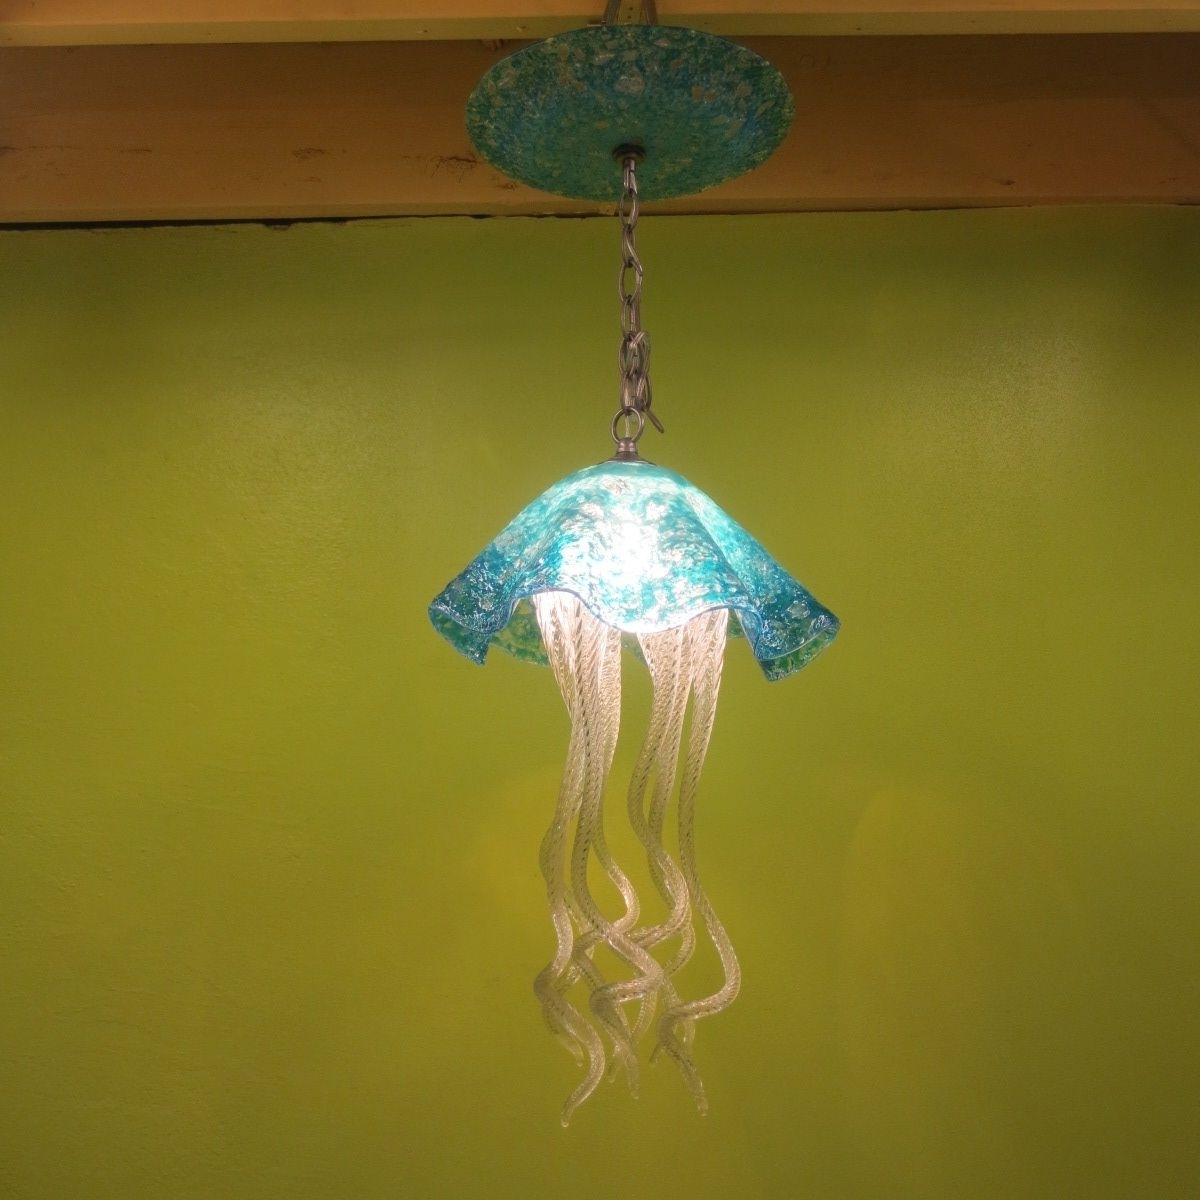 Buy A Hand Made Jellyfish Pendant Light – Turquoise Jellyfish Within Well Known Turquoise Blown Glass Chandeliers (View 2 of 15)